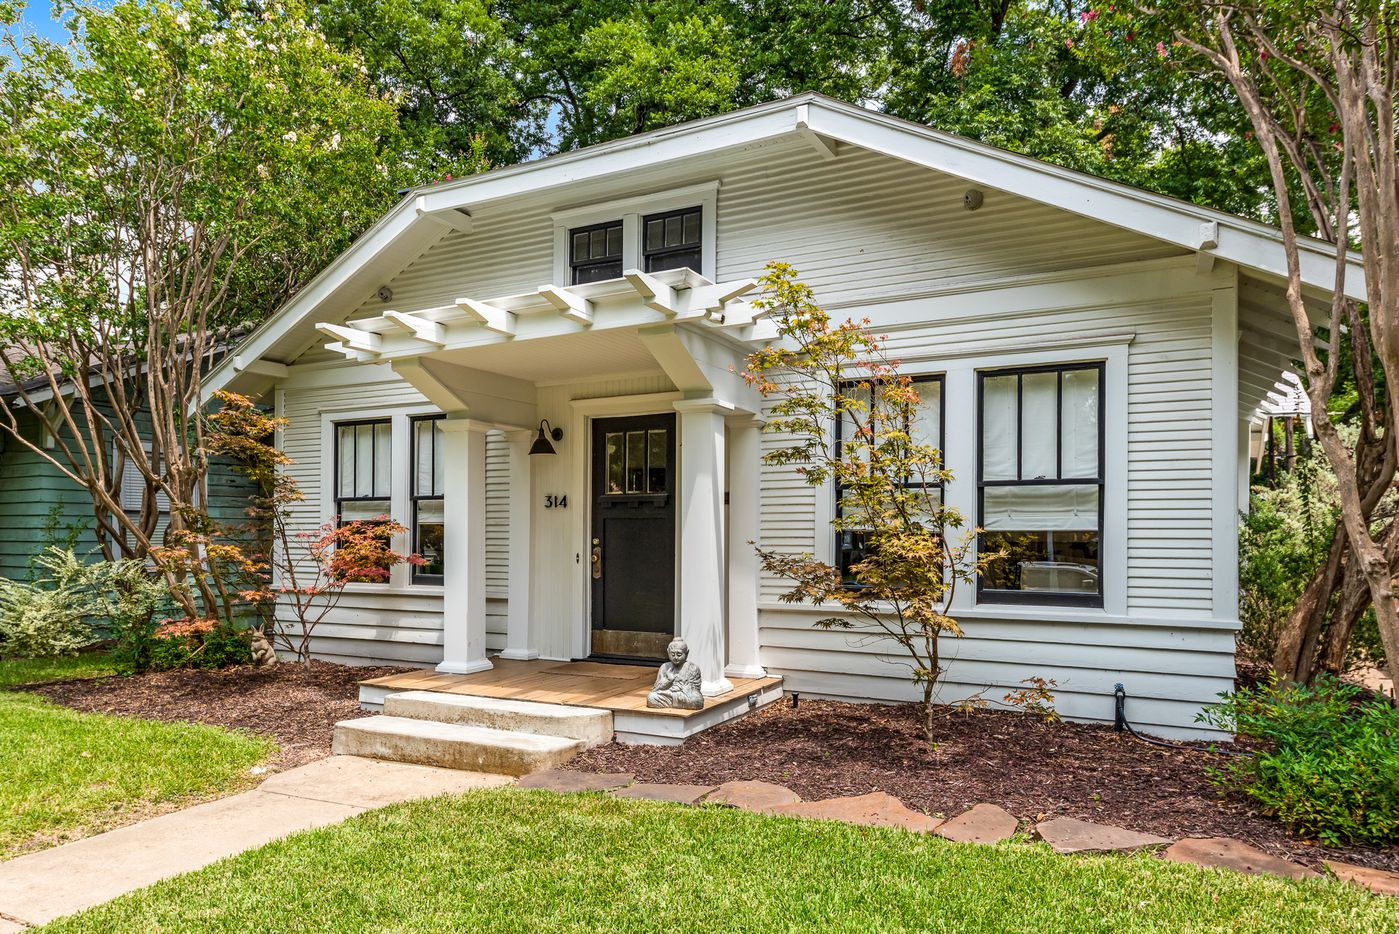 A look at 314 S. Montclair Avenue, one of the houses on the 2019 Heritage Oak Cliff Home Tour.